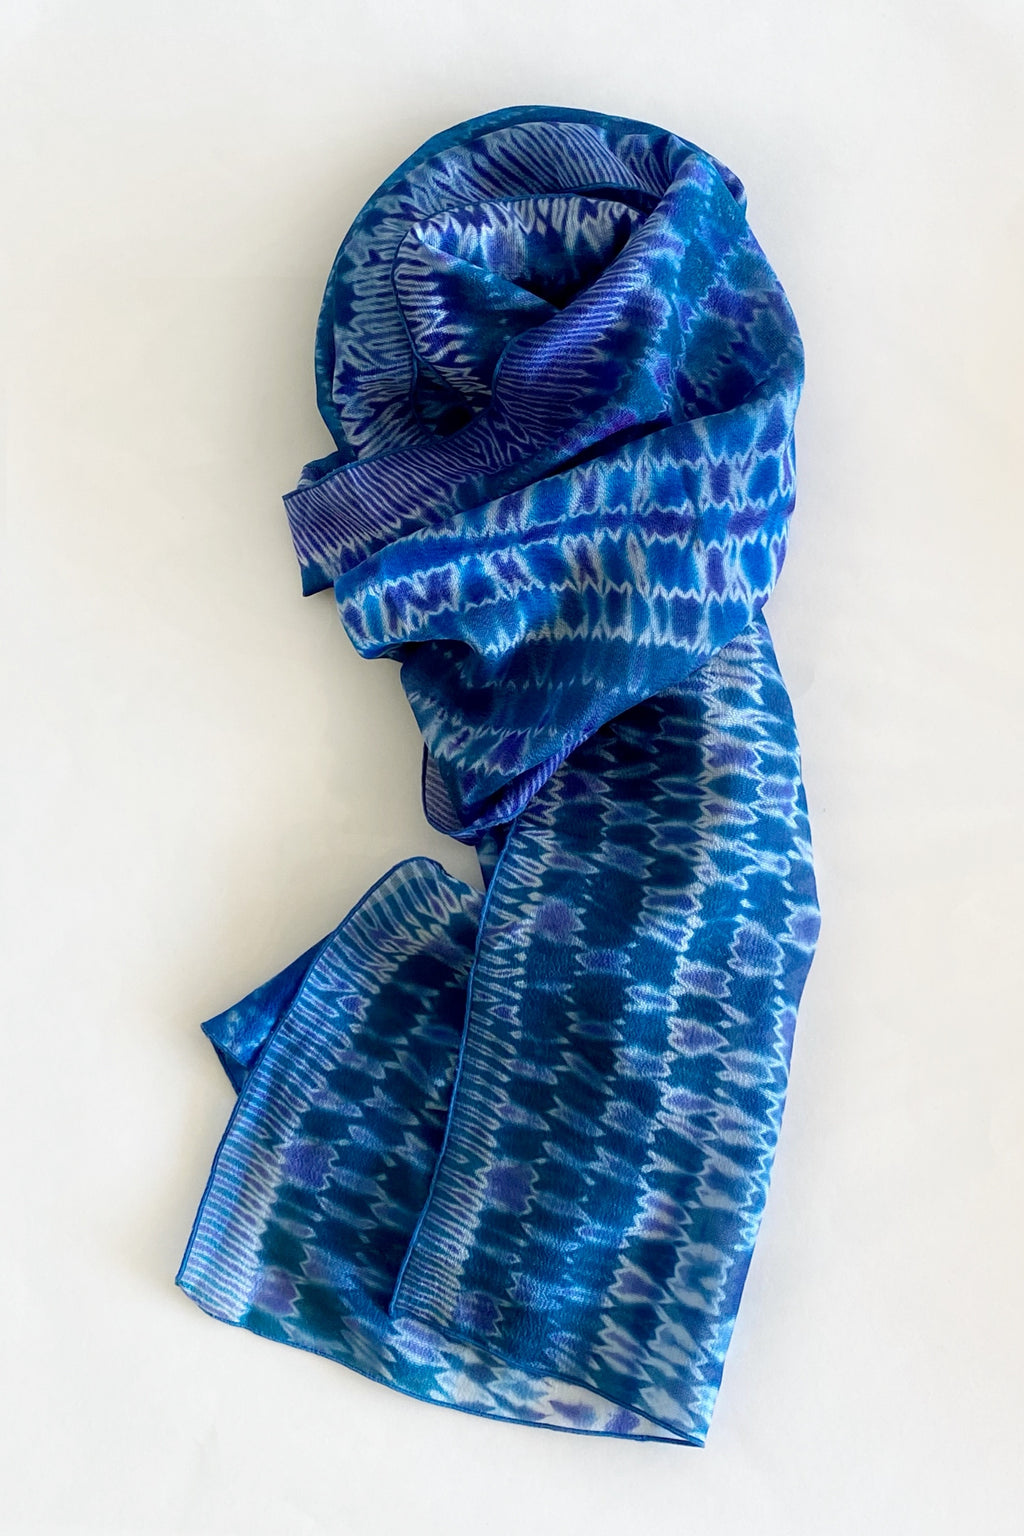 Shibori Dyed Silk Scarf in Azure Blue Crepe